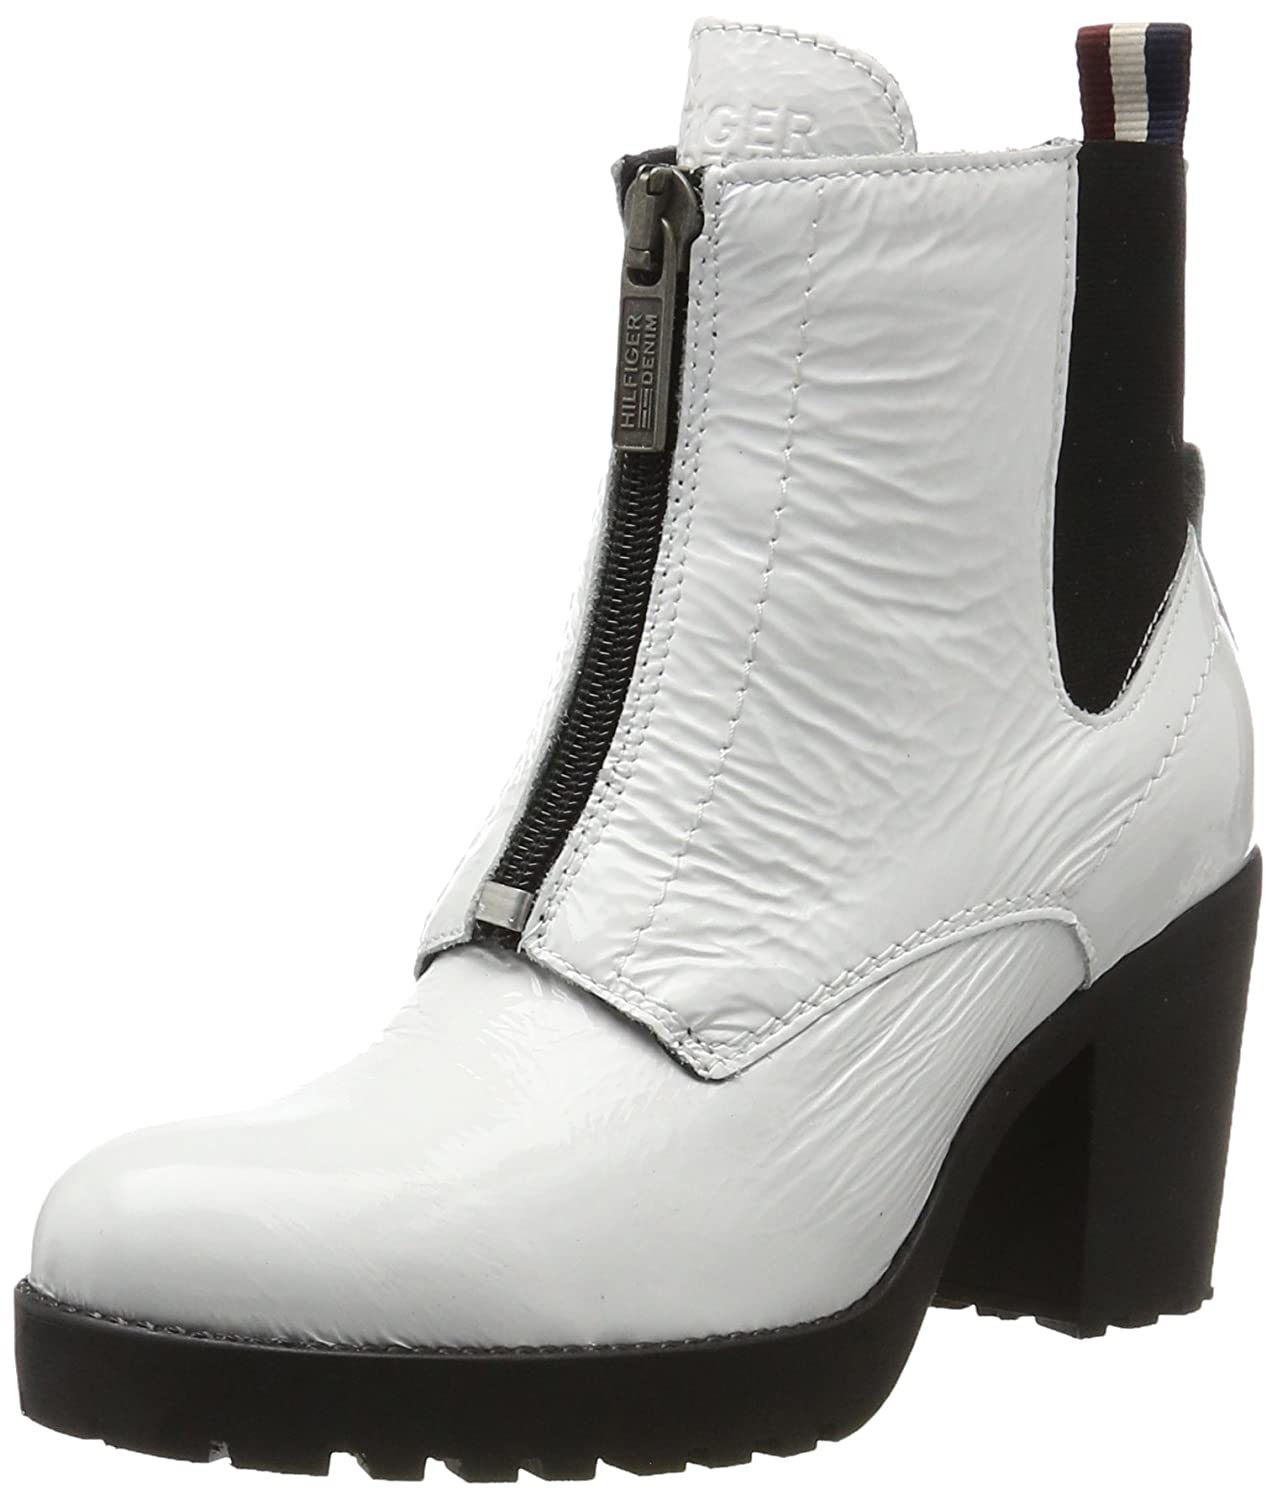 Tommy Jeans B1385oo 3a, Botas Chelsea para Mujer Blanco (White)